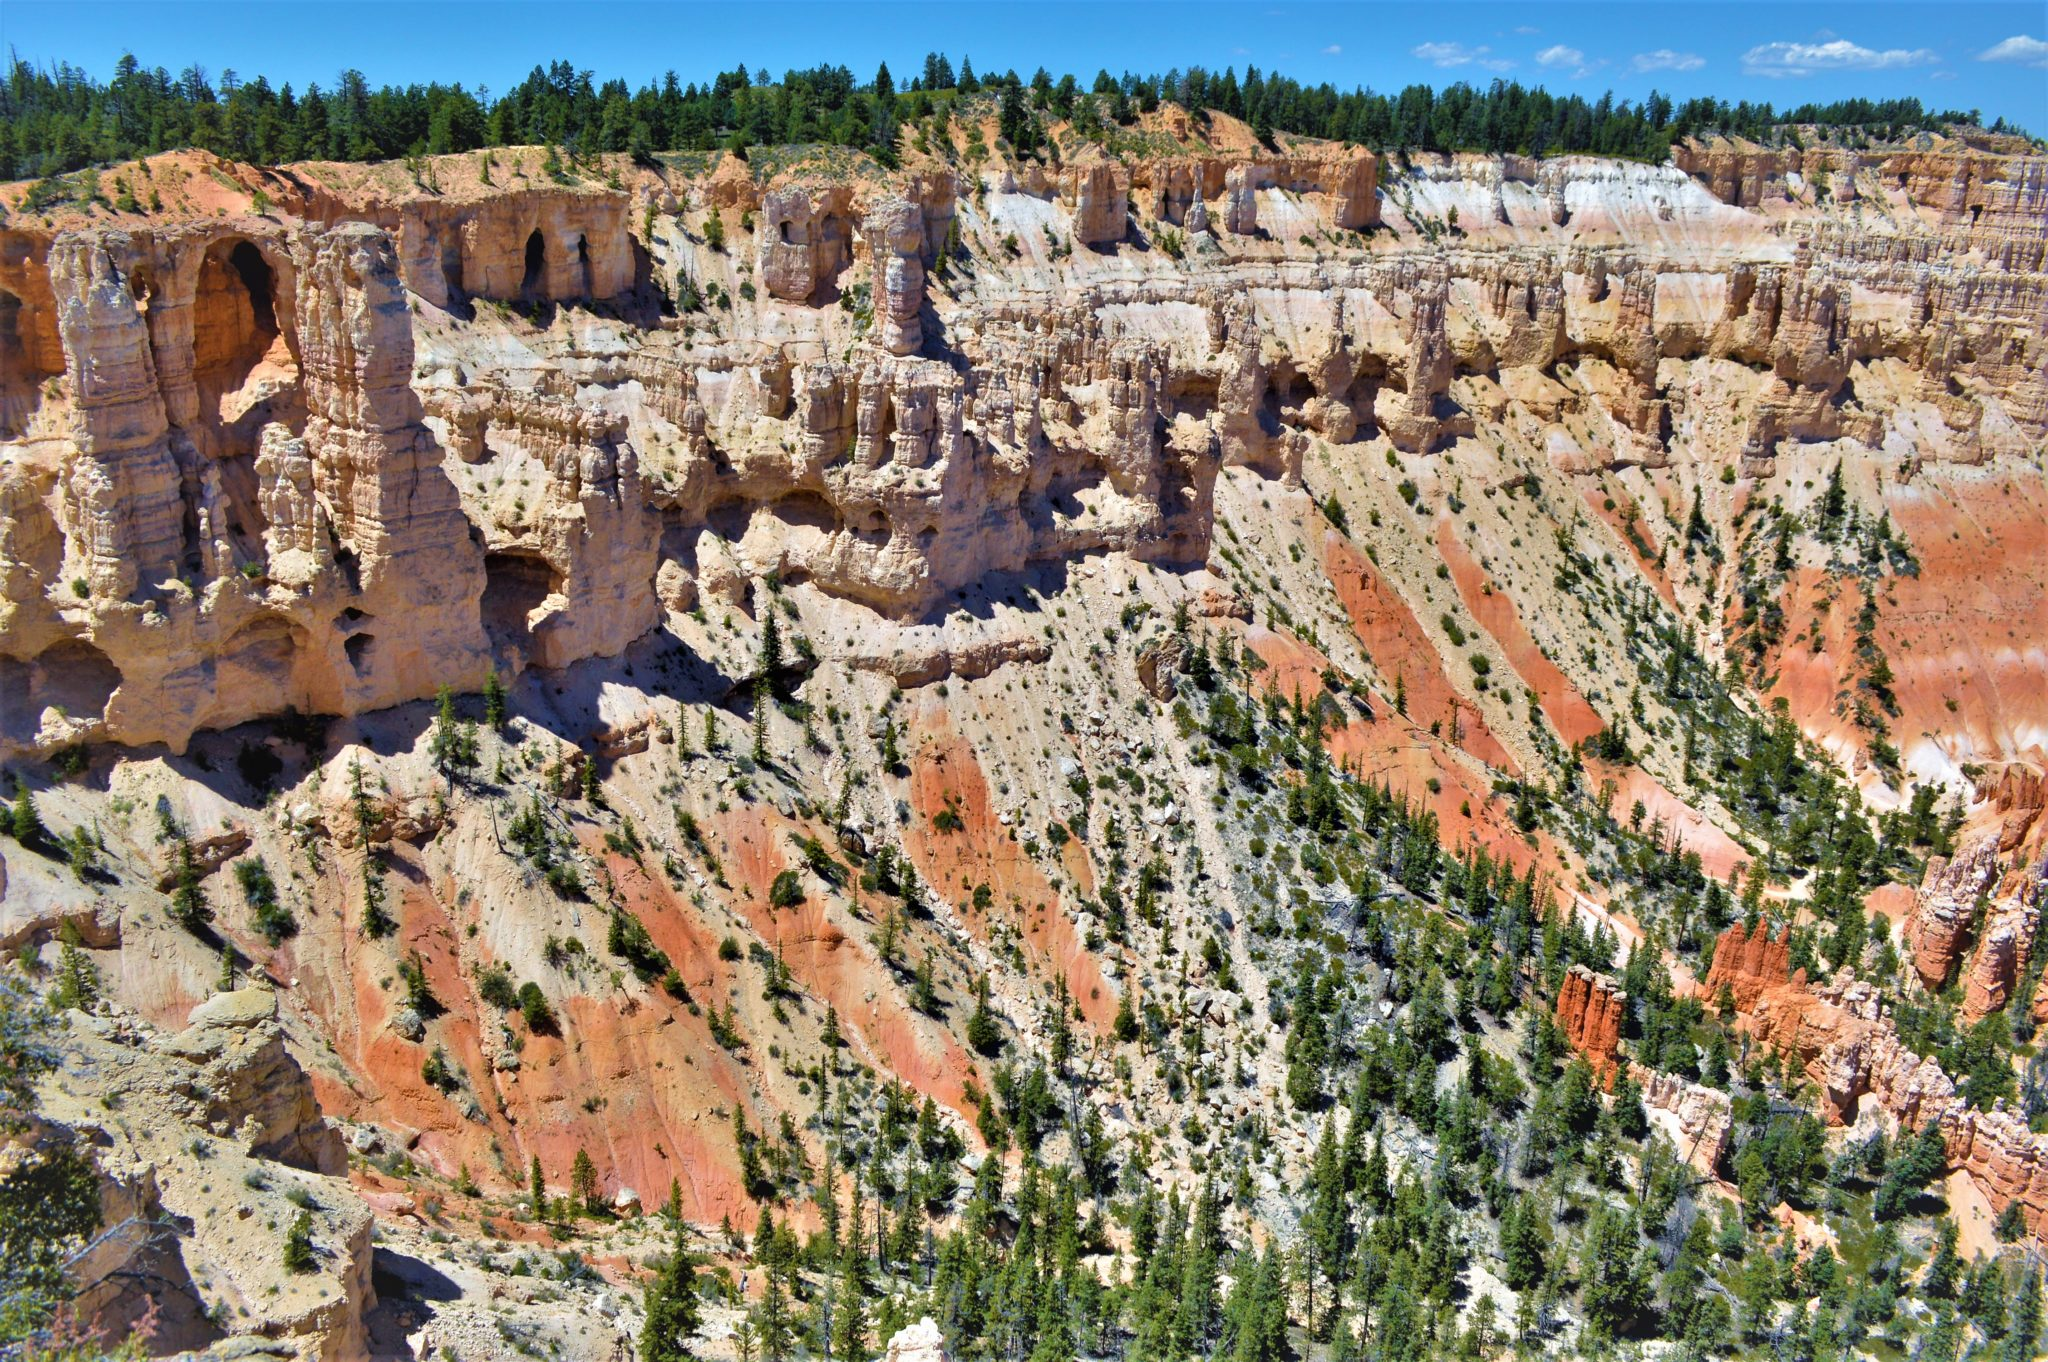 Alien rock formations at Bryce Canyon National Park